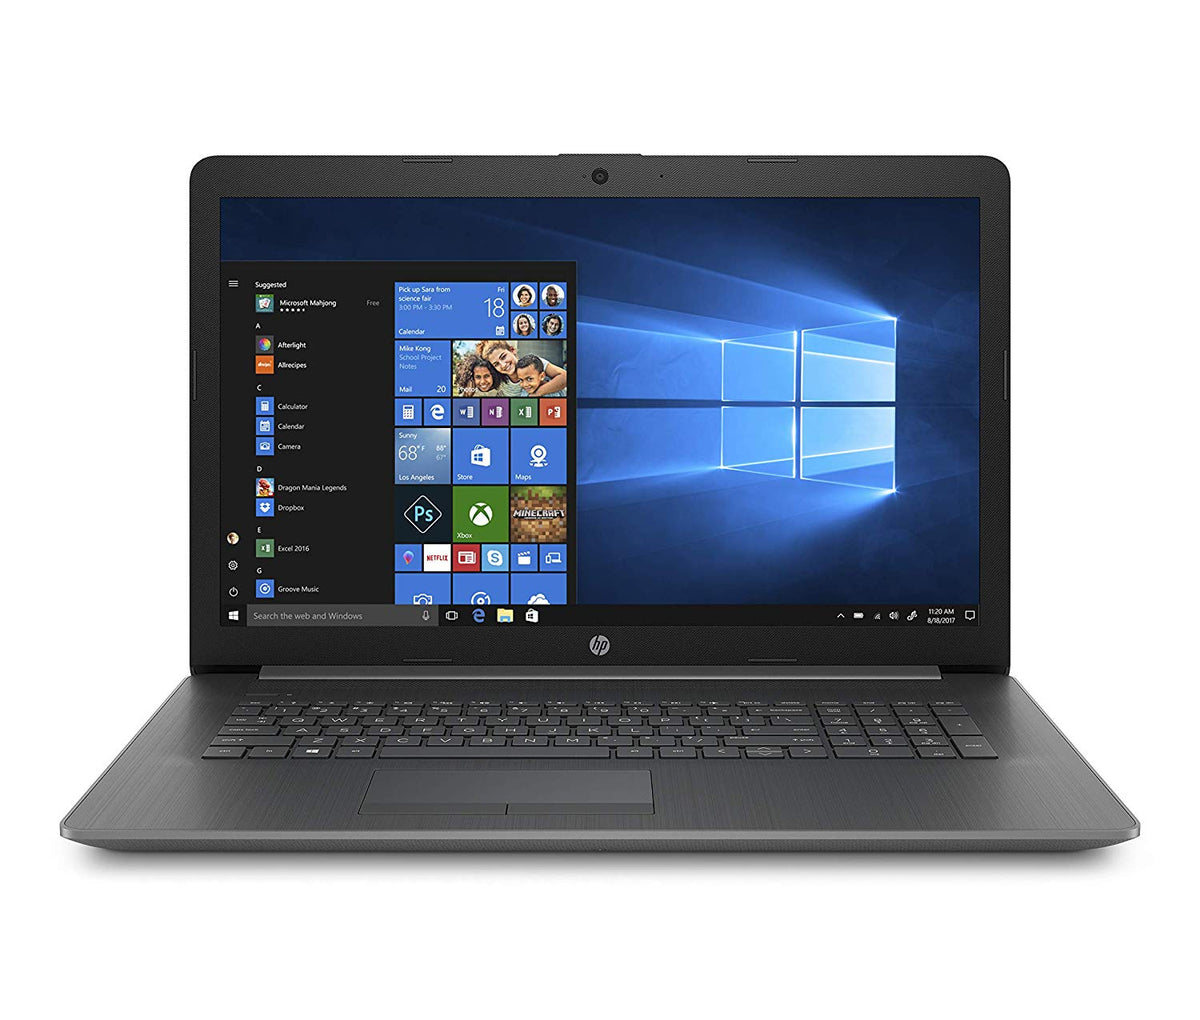 HP 17-inch Laptop, AMD A9-9425, 4GB RAM, 1TB Hard Drive, 17-ca0020nr - Gray